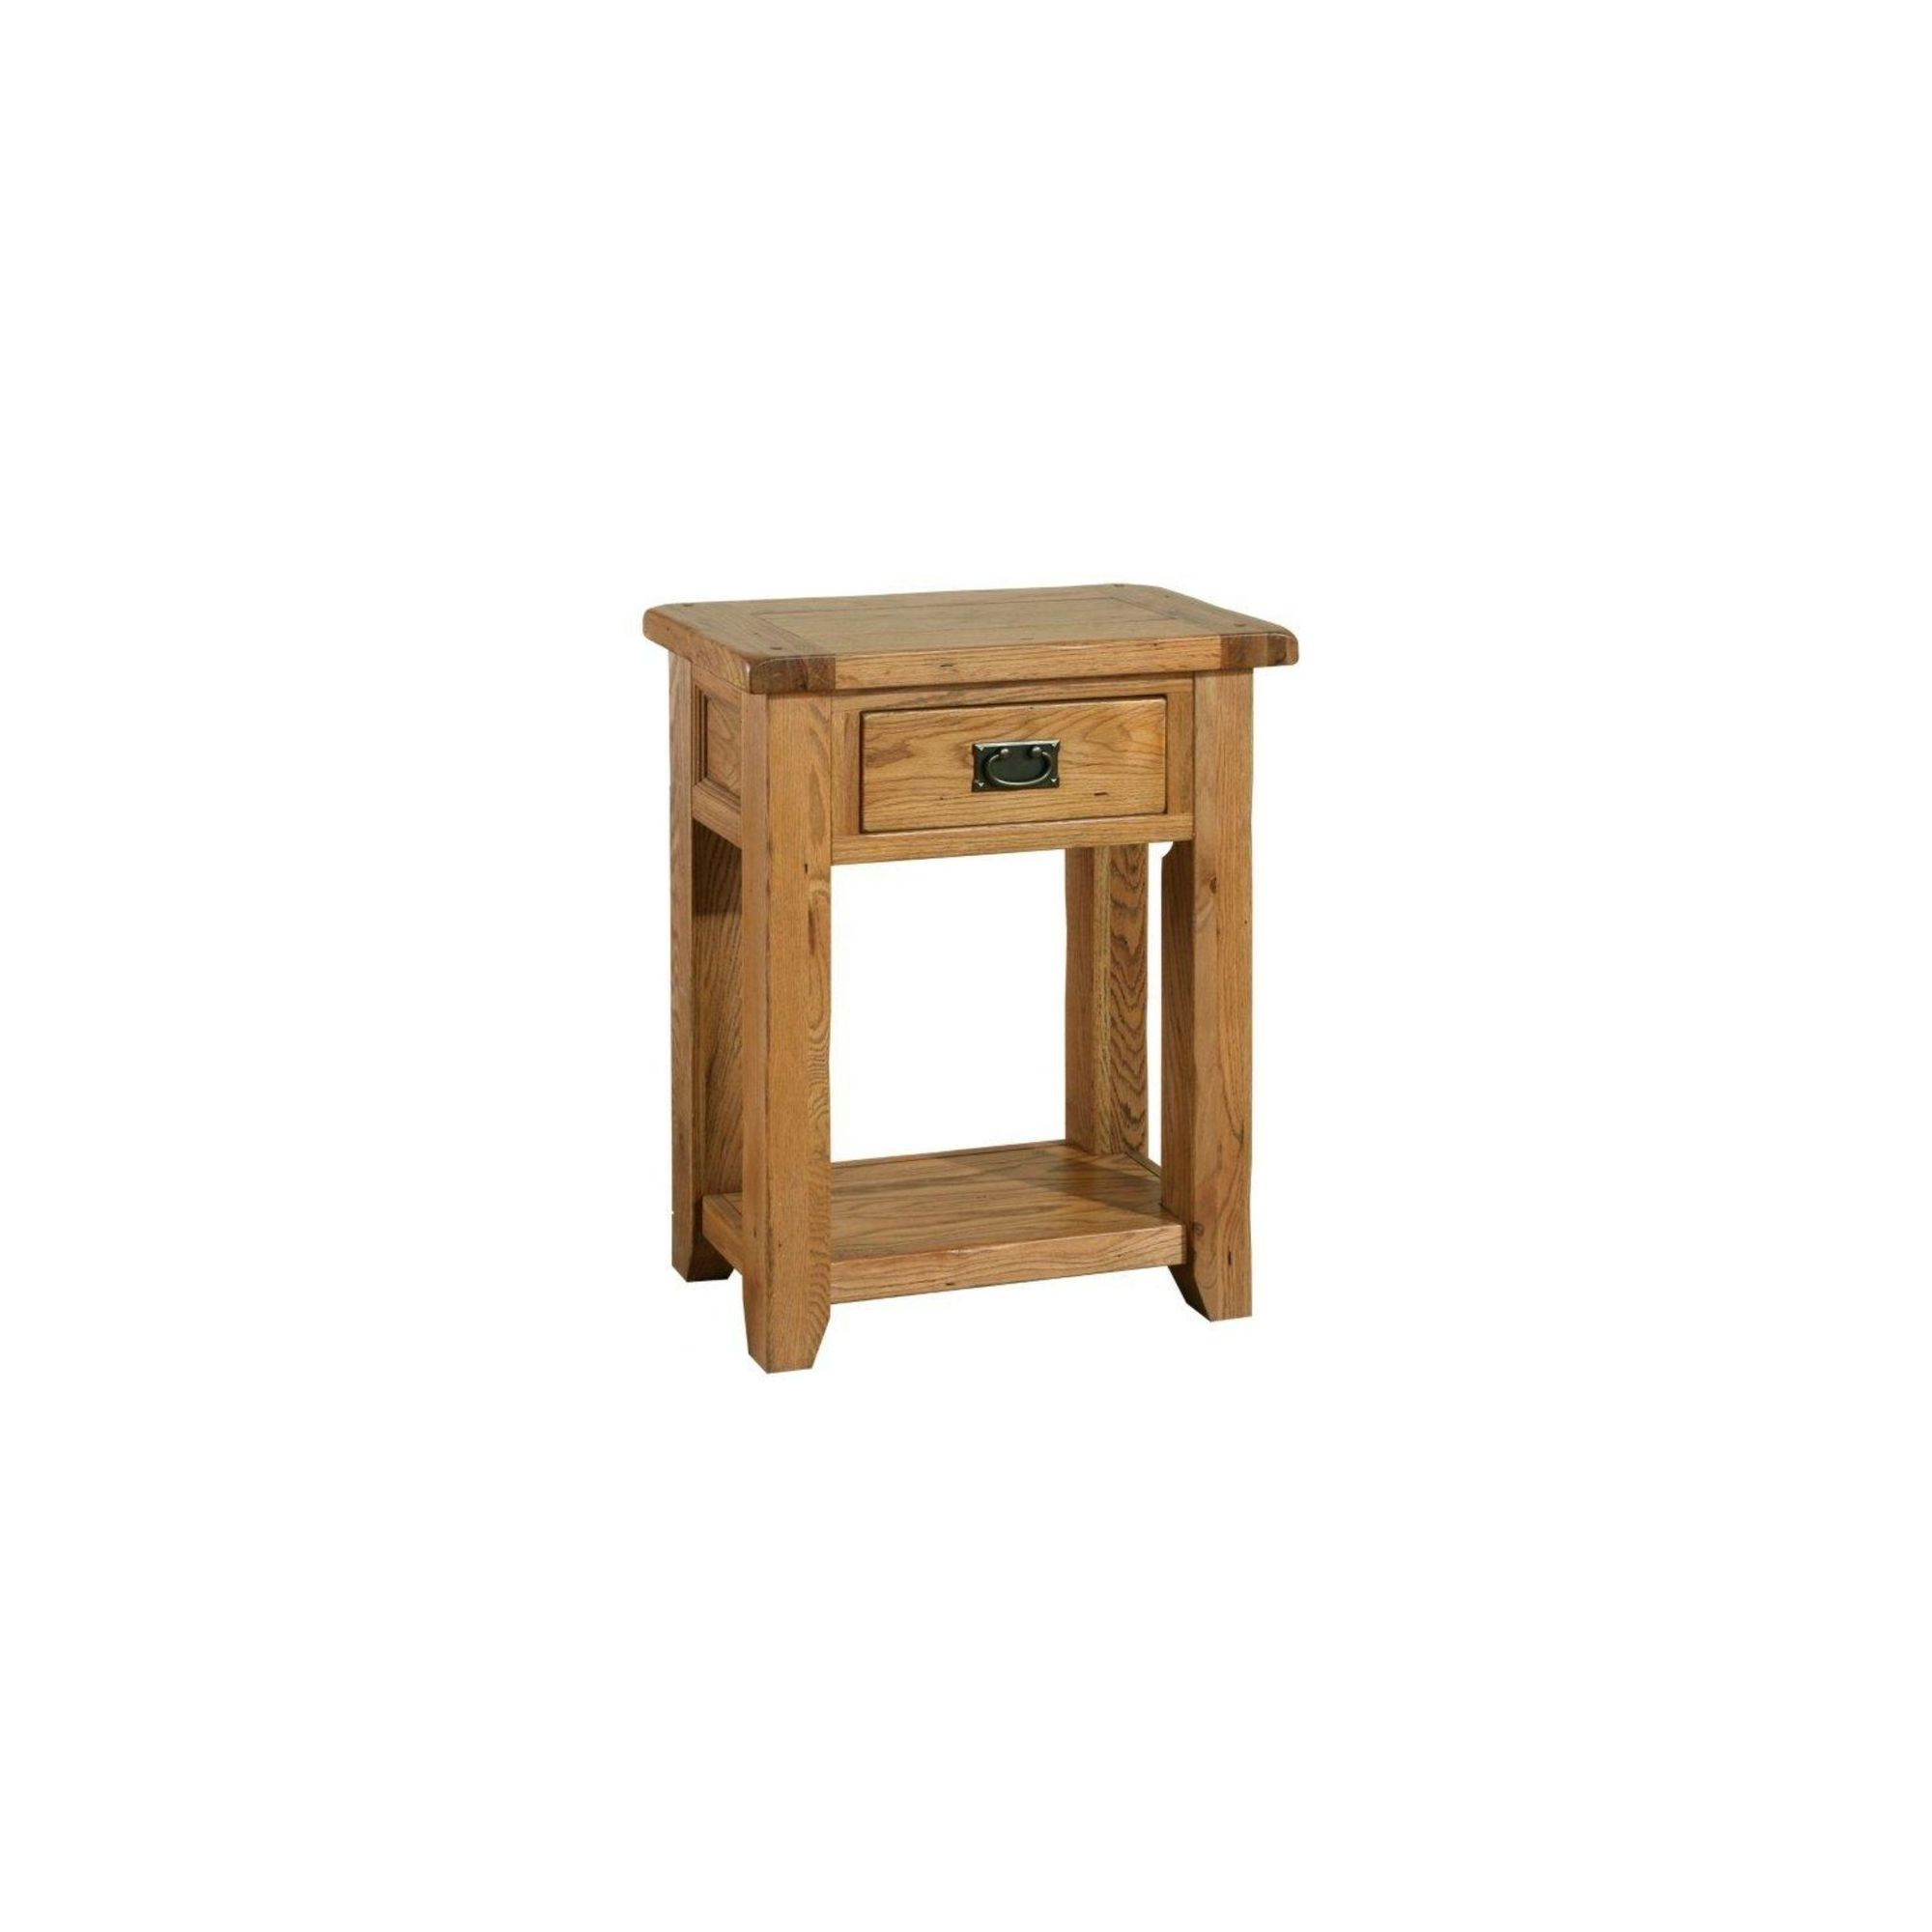 Kelburn Furniture Bordeaux Console Table in Medium Oak Stain and Satin Lacquer